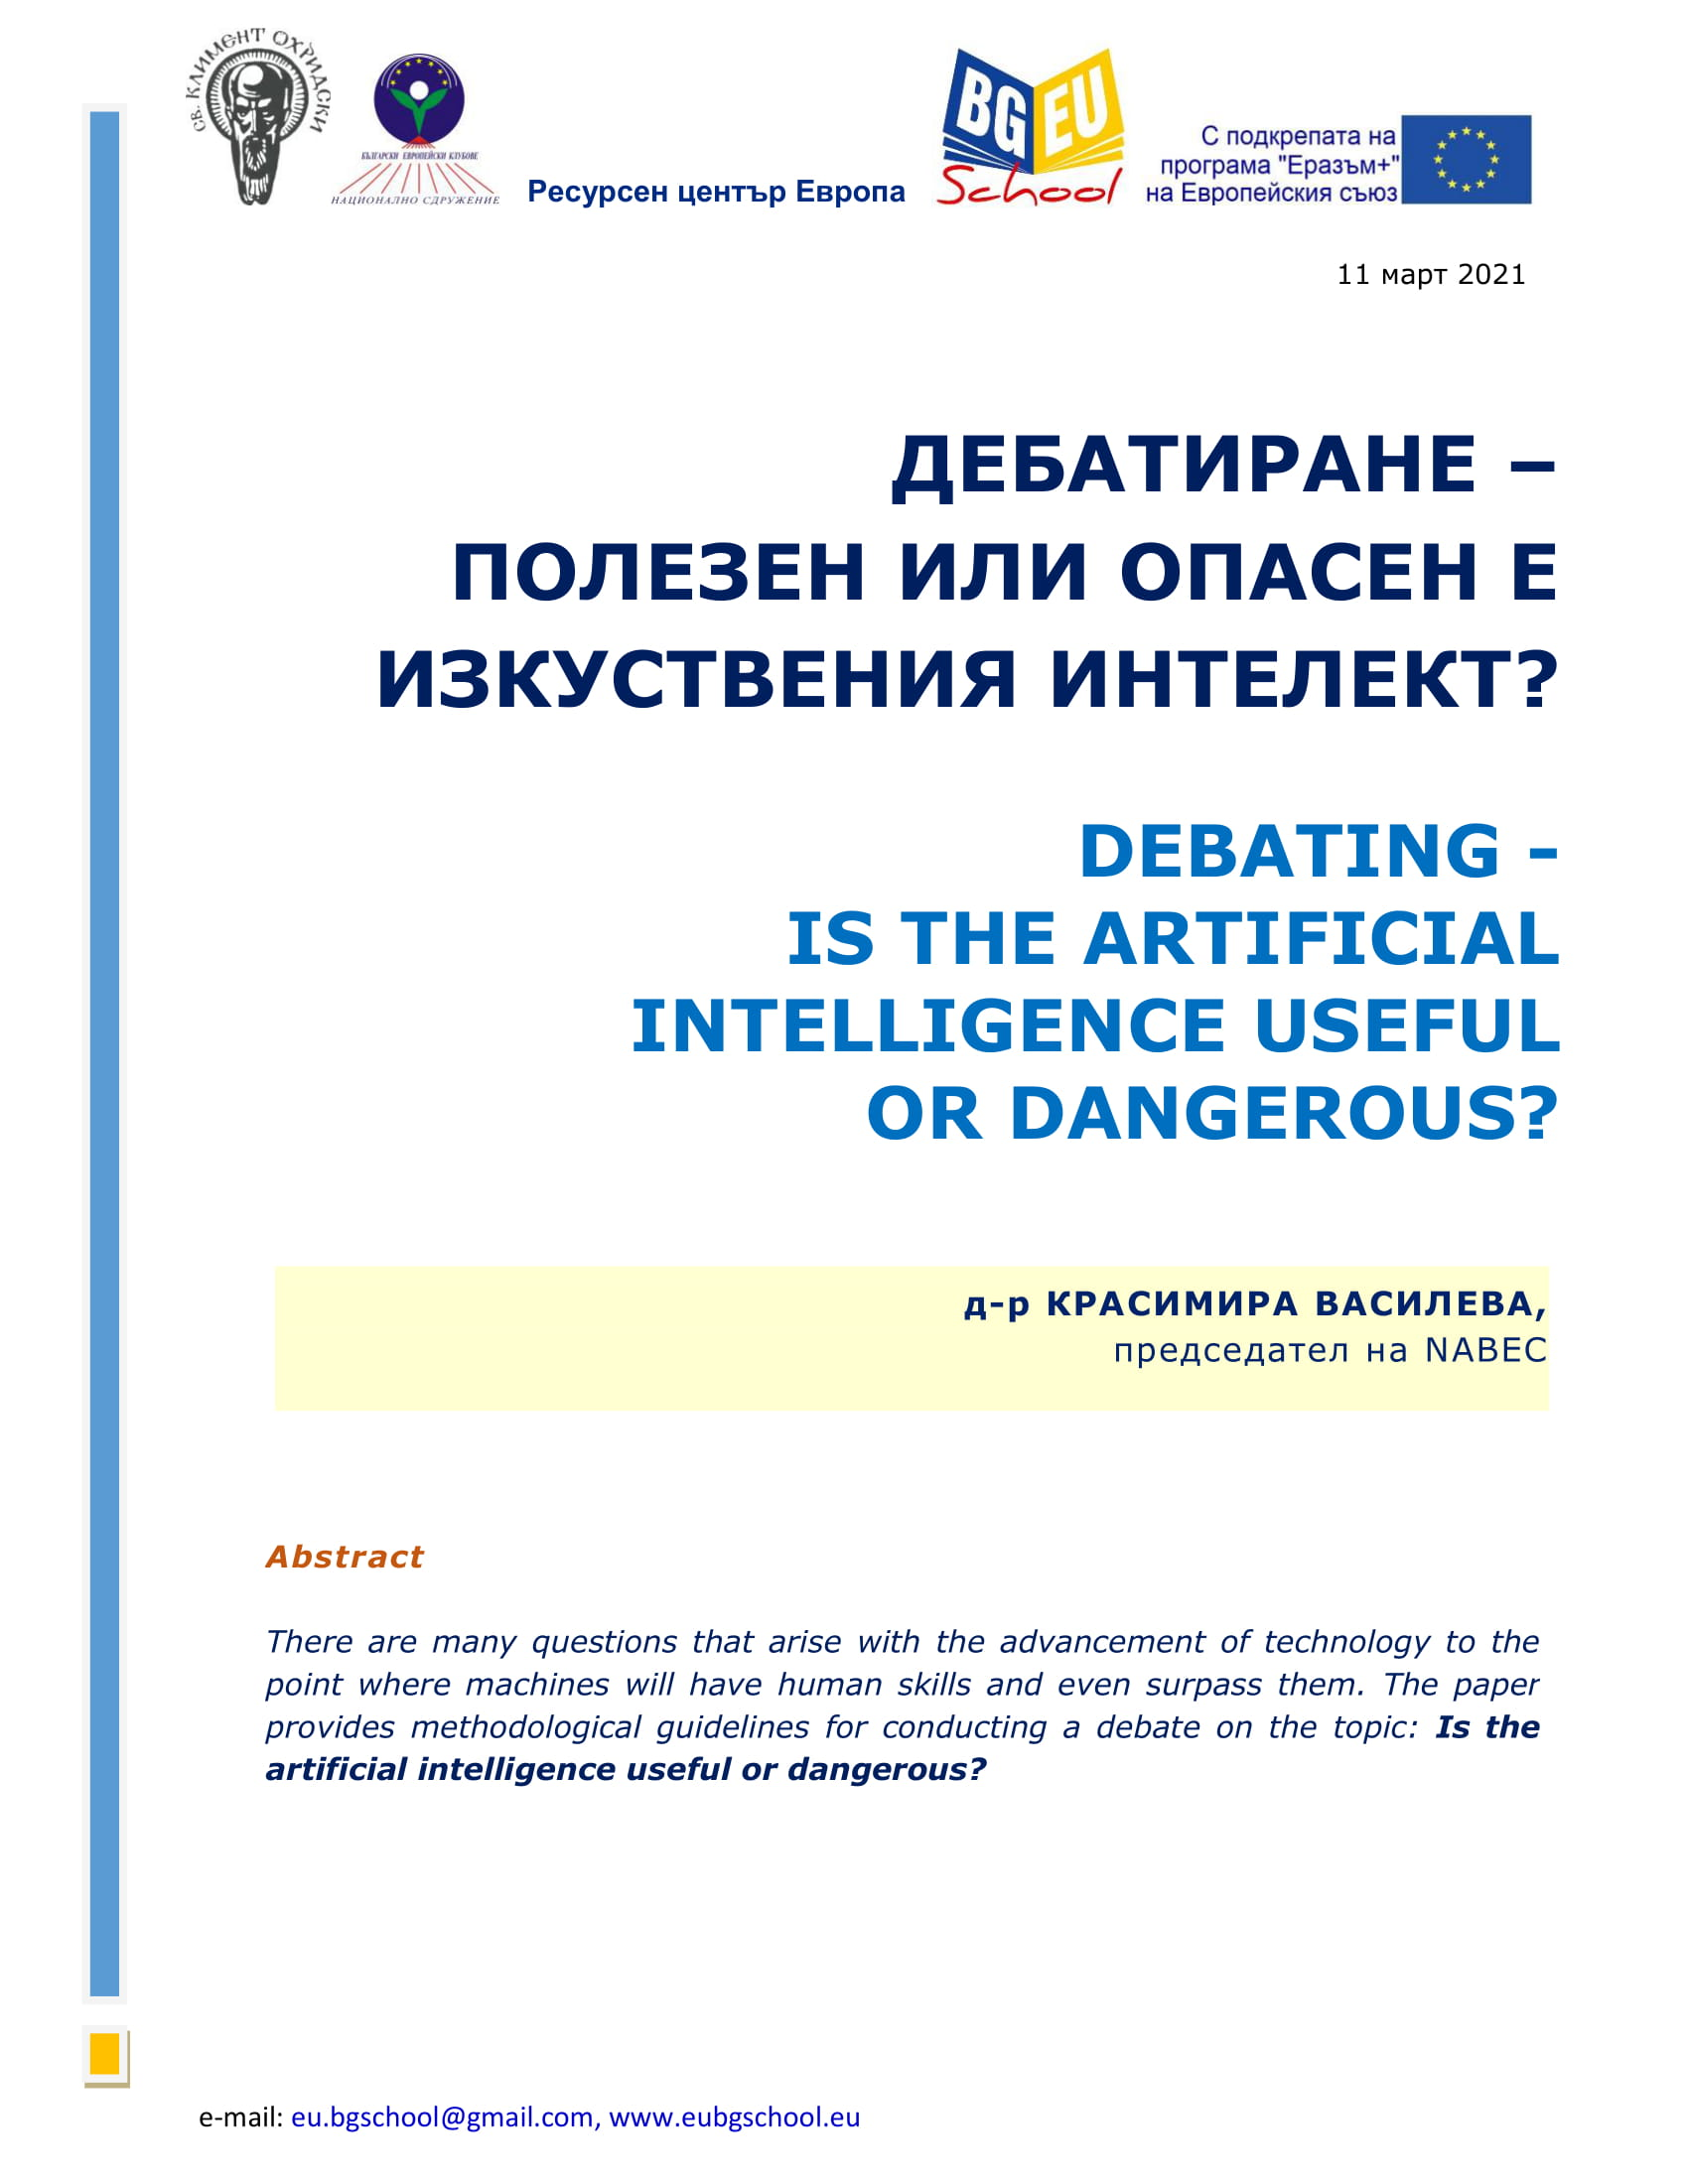 DEBATING - IS THE ARTIFICIAL INTELLIGENCE USEFUL OR DANGEROUS?